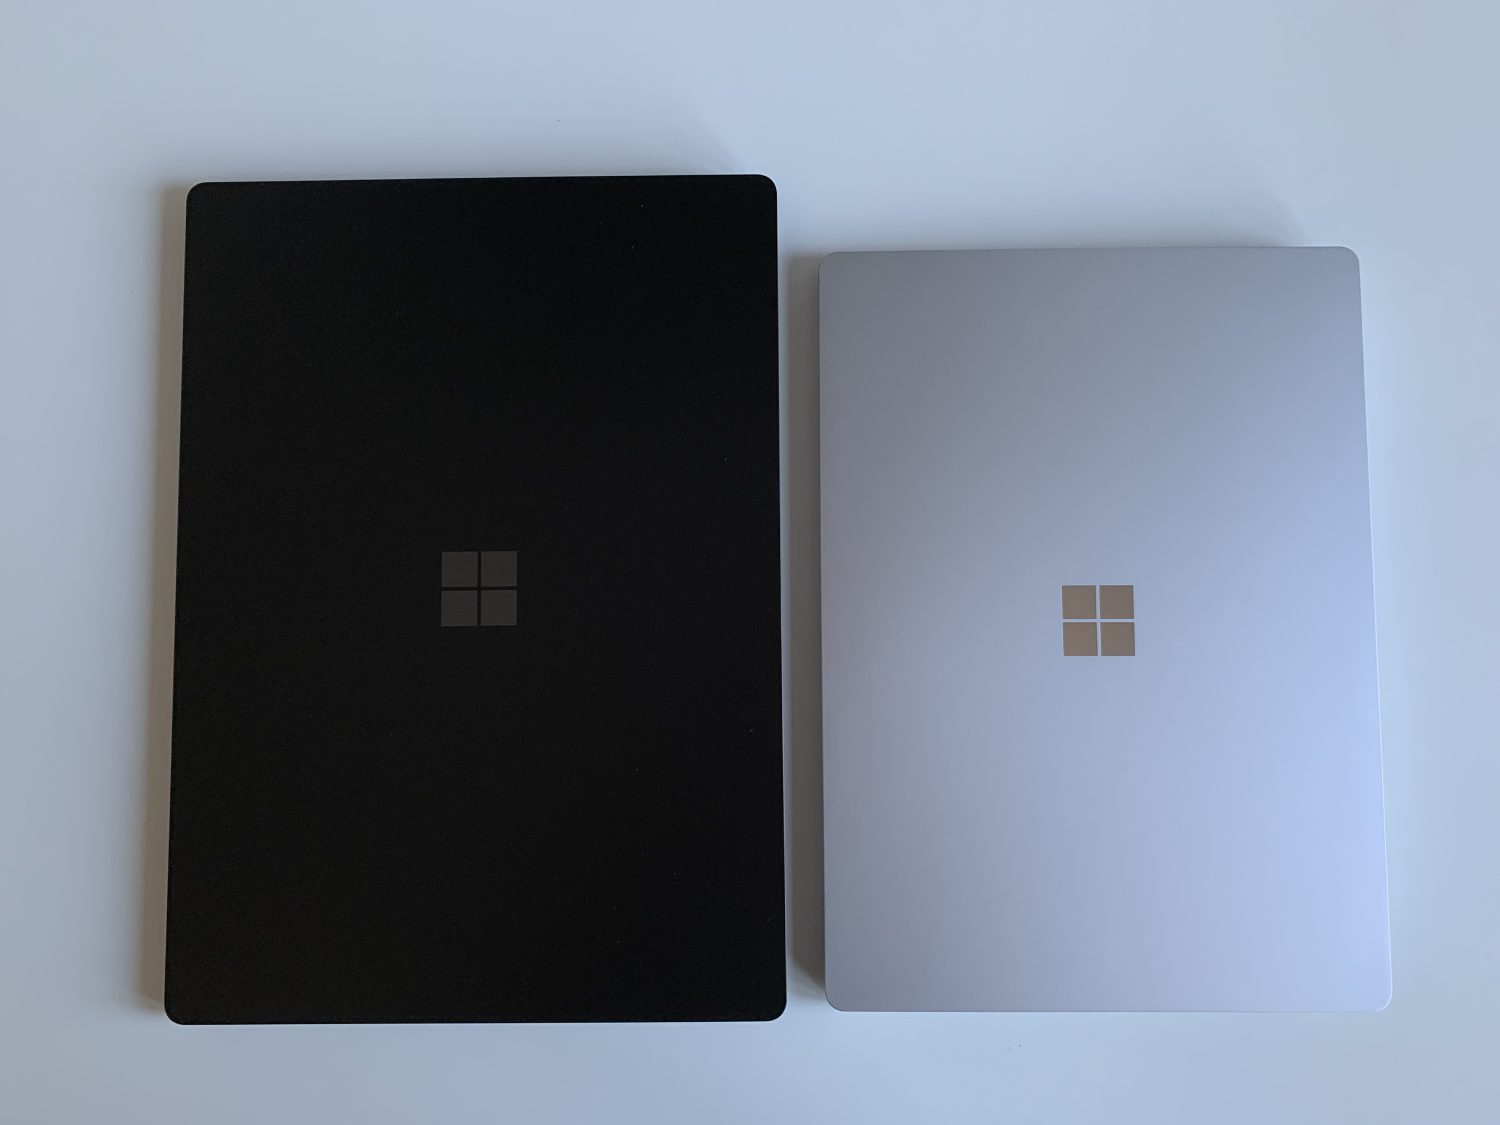 Surface 13 vs Surface 15